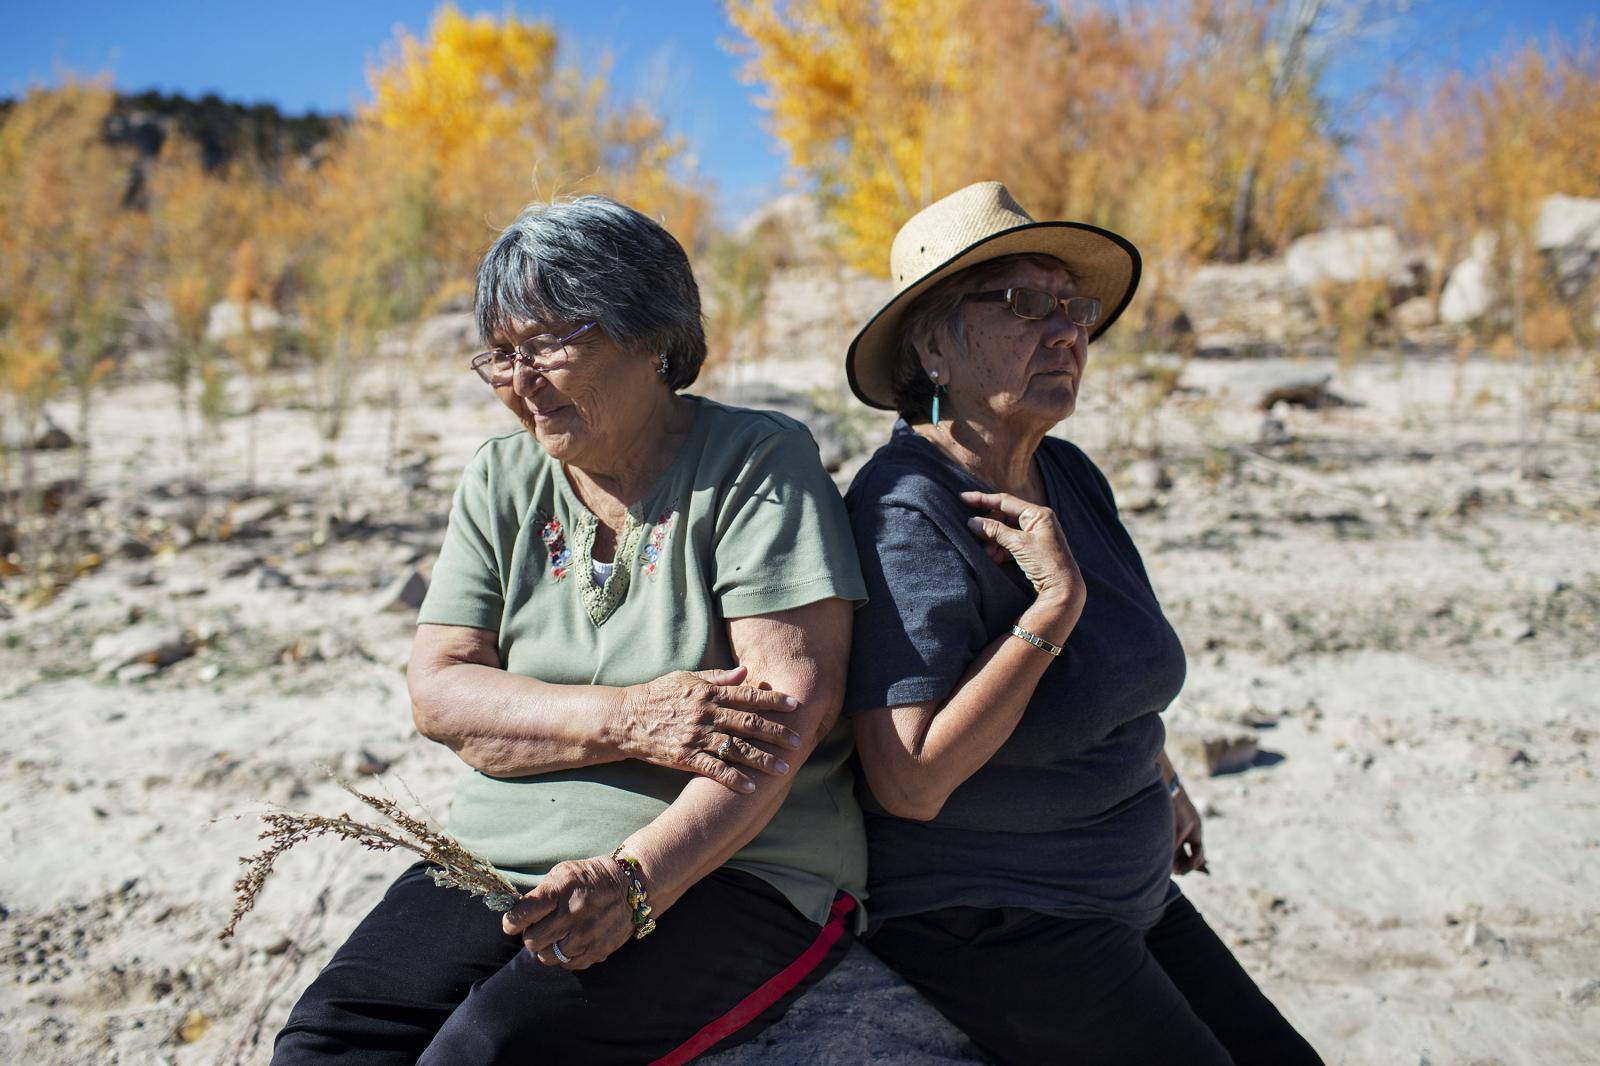 BLANDING, UTAH - OCTOBER 27, 2017: Sisters Louise Jensen and Irene Clah sit on a rock along a reservoir near Bears Ears National Monument land outside Blanding, Utah on Friday, October 27, 2017. Jensen and Clah, Navajo people who grew up in the area, expressed doubts that Bears Ears' monument status will protect their way of life, instead showing concern that the monument's popularity with tourists may cause greater interference with the land. CREDIT: KC McGinnis for The New York Times